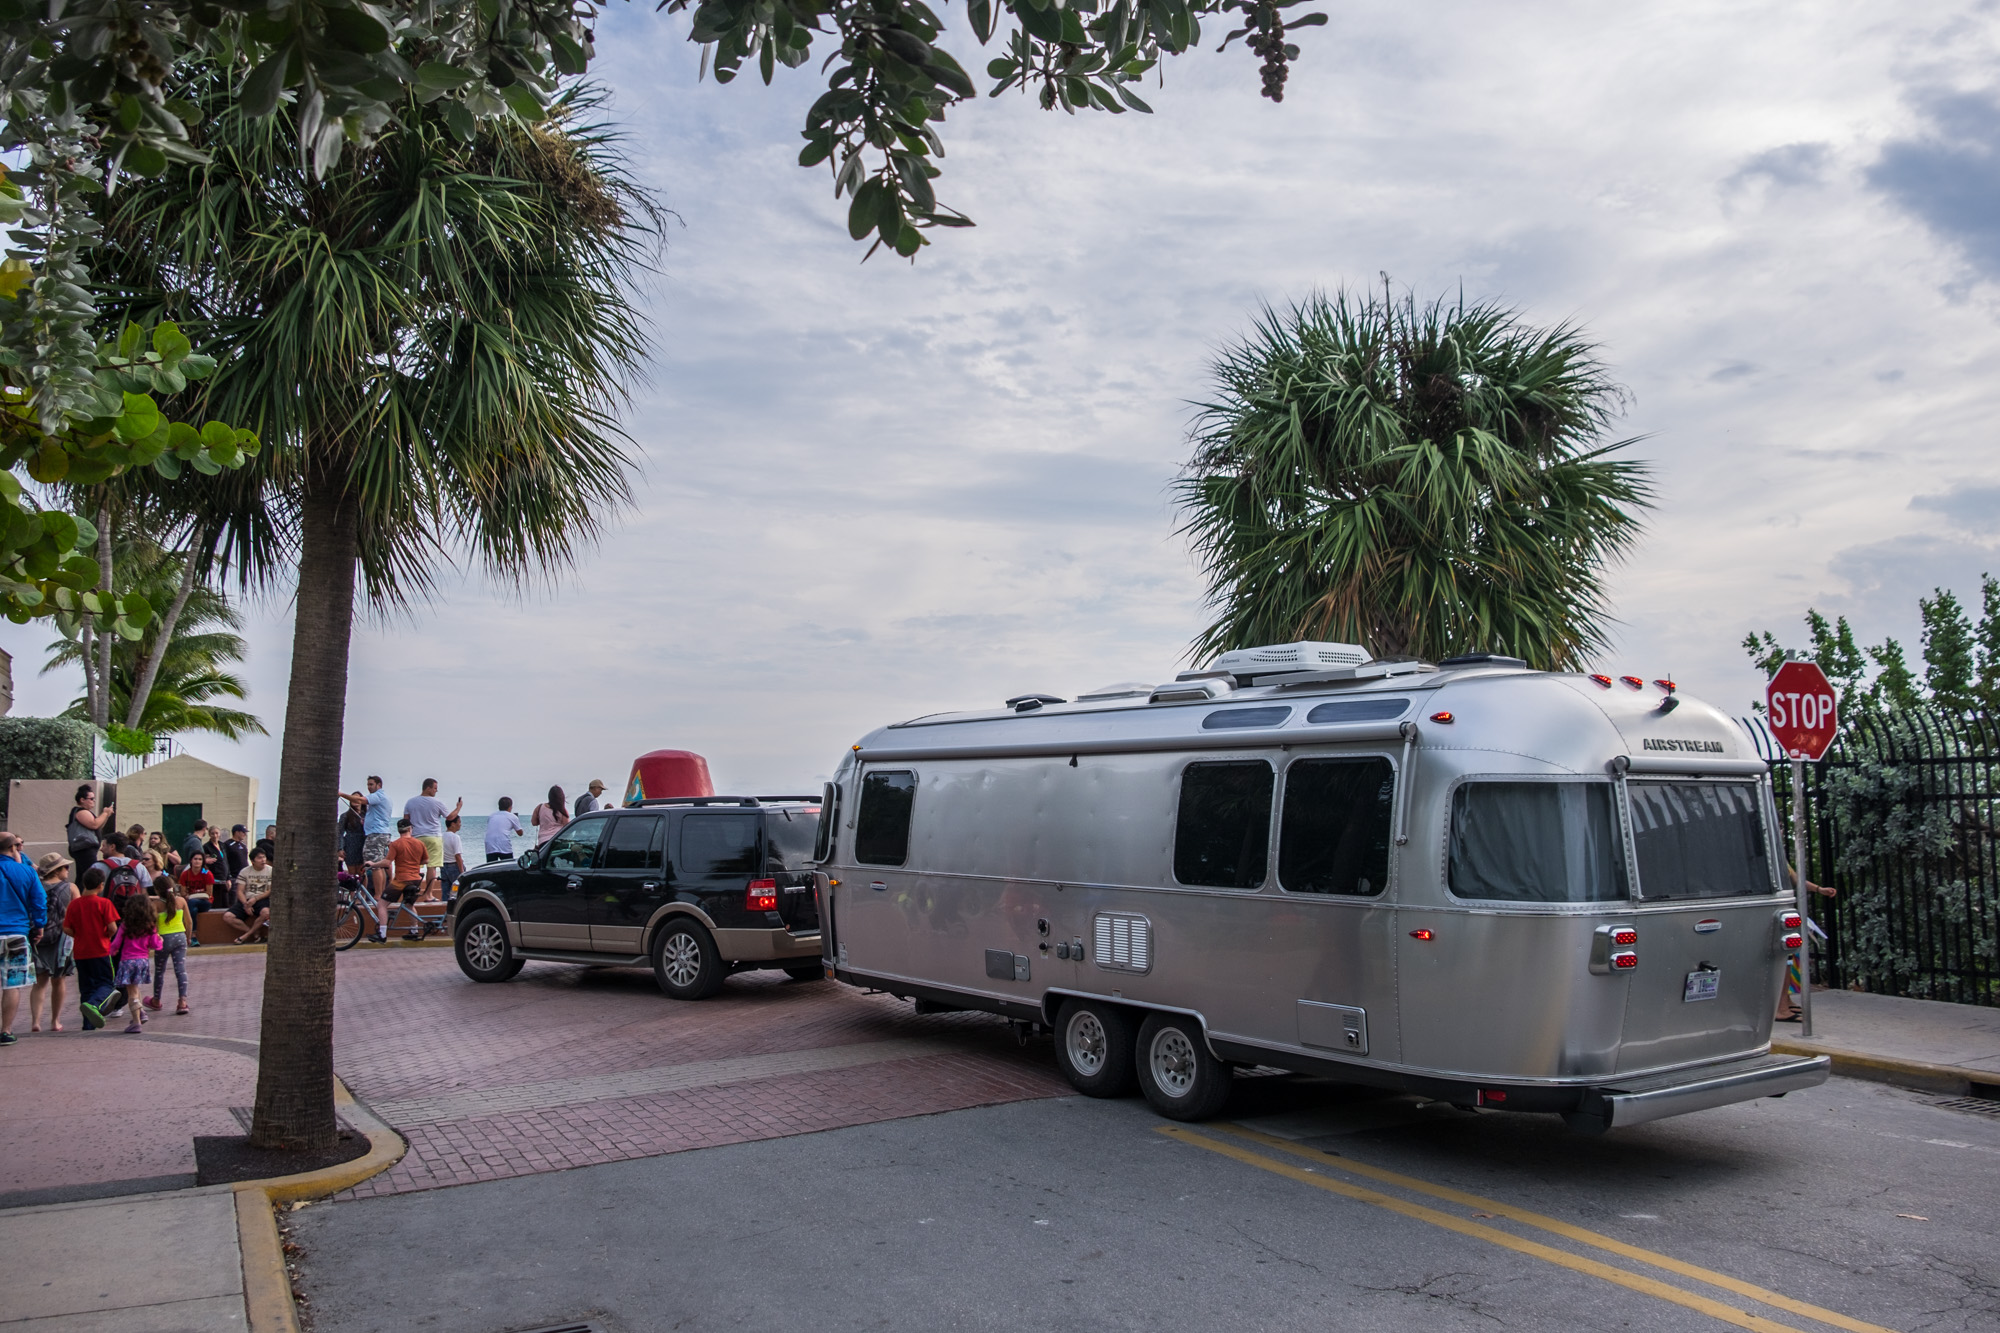 To get to Dry Tortugas, you need to go through Key West. And of course, we had to bring the Airstream to the (supposed) most southerly point in the U.S.